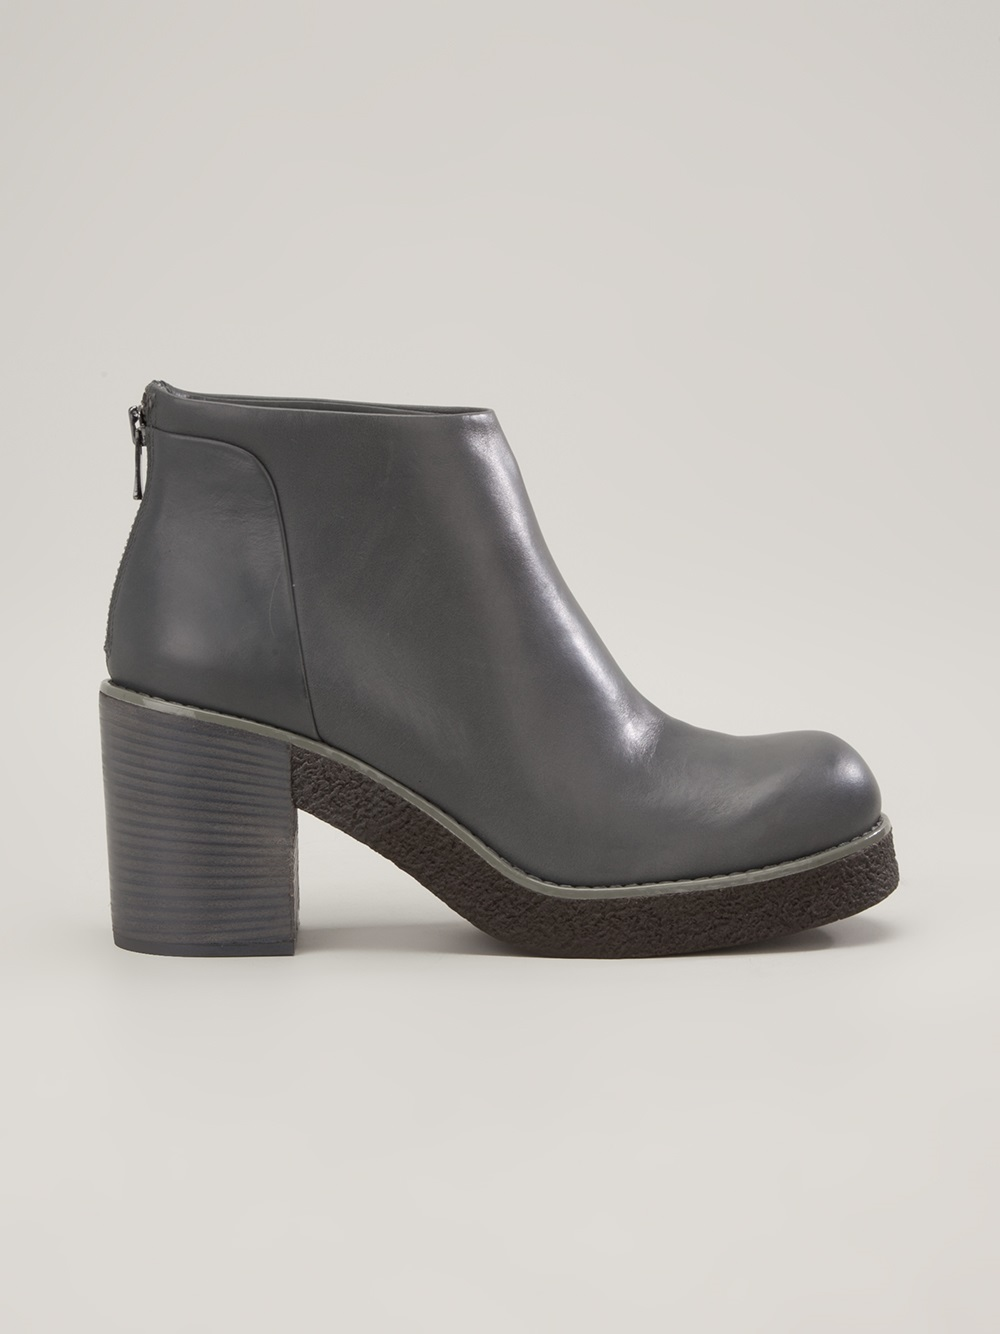 Jil Sander Suede Platform Boots pay with paypal sale online outlet wiki cheap how much 2014 cheap price kKlYy